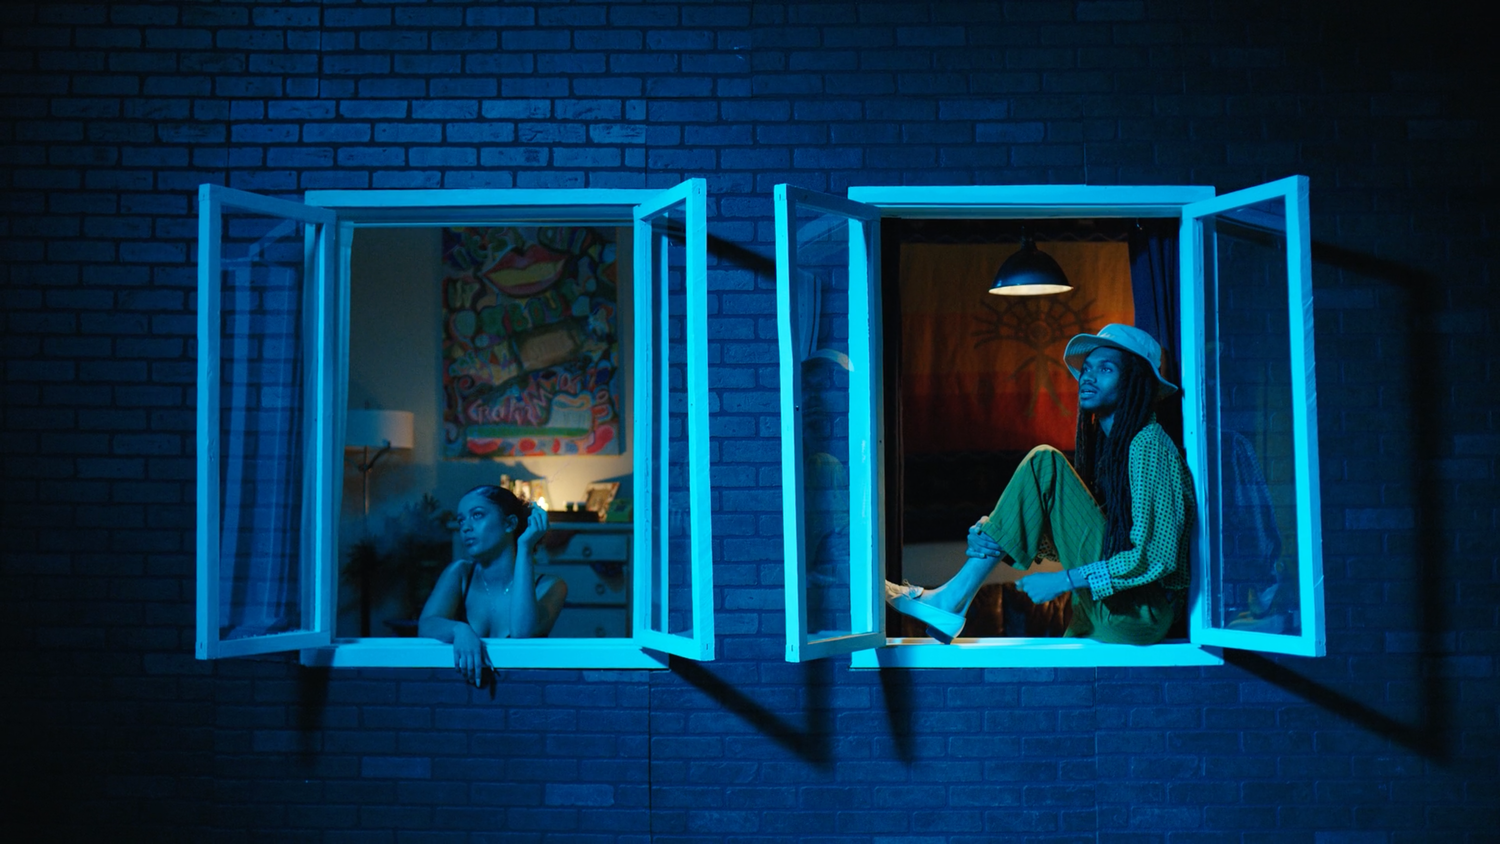 Way Too Far by Phony Ppl - Music Video - Cinematography by Philips Shum